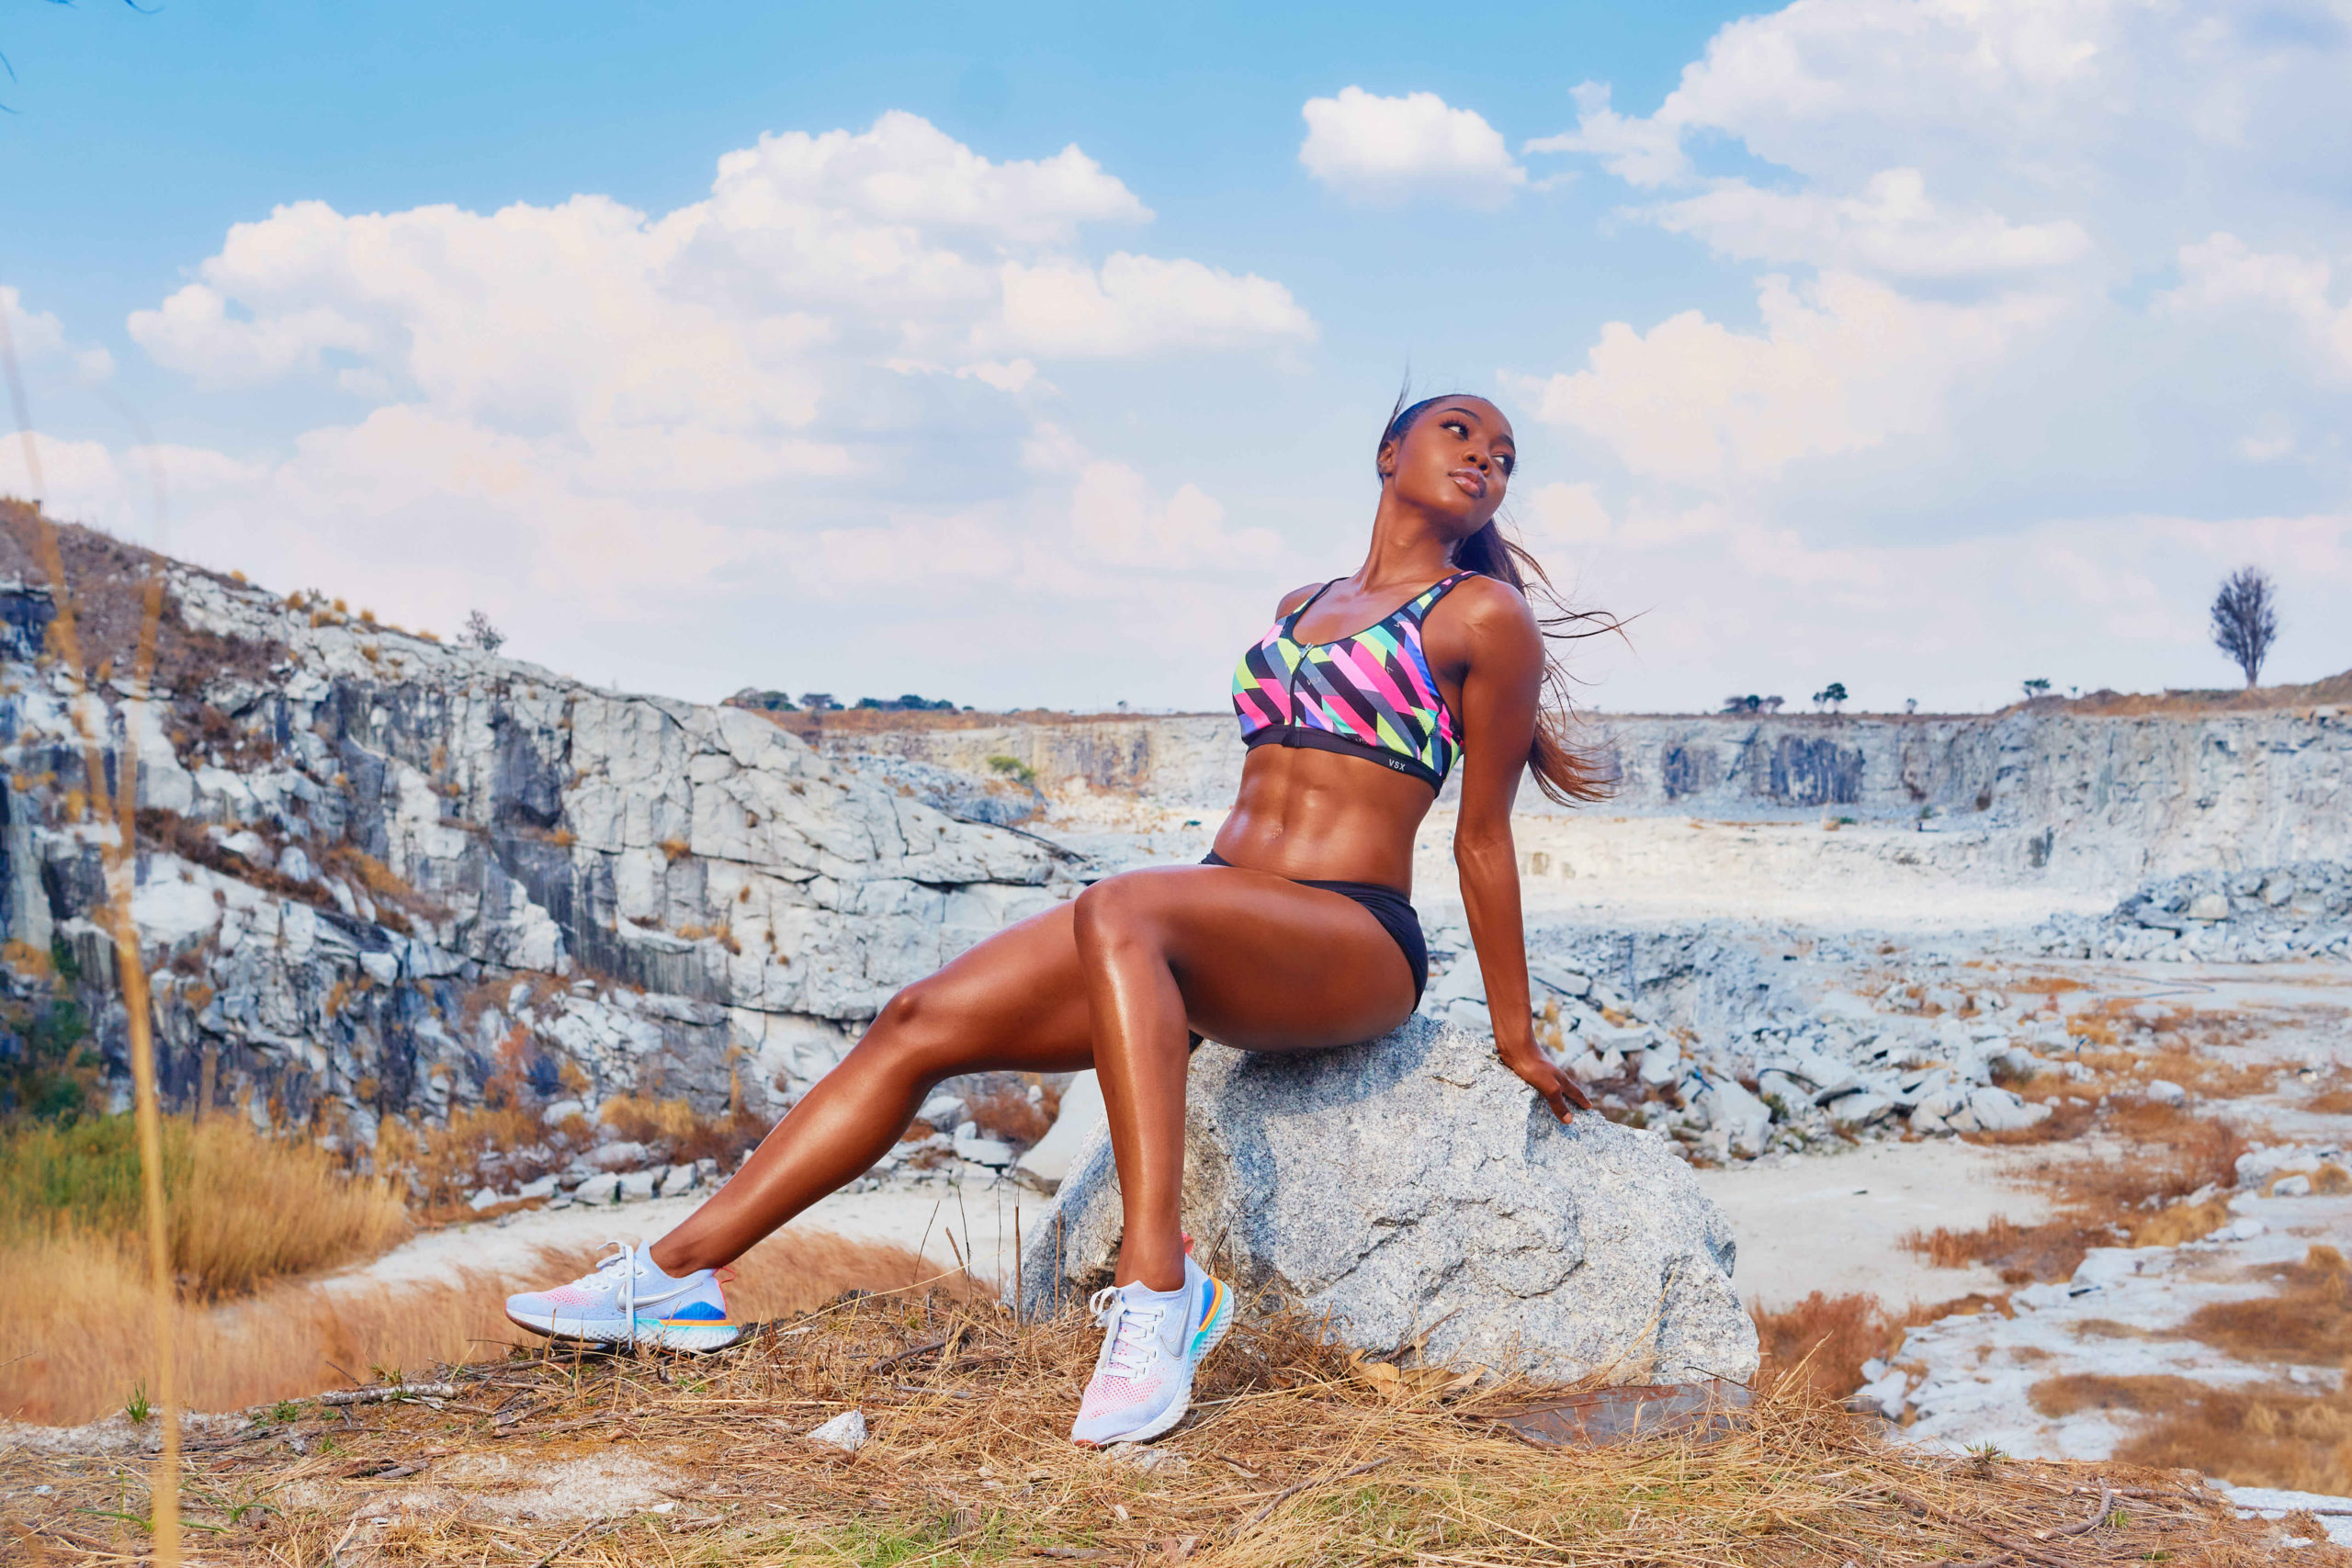 Michelina Chindiya, Zimbabwe's Go-To Wealth Specialist and Fitness Enthusiast